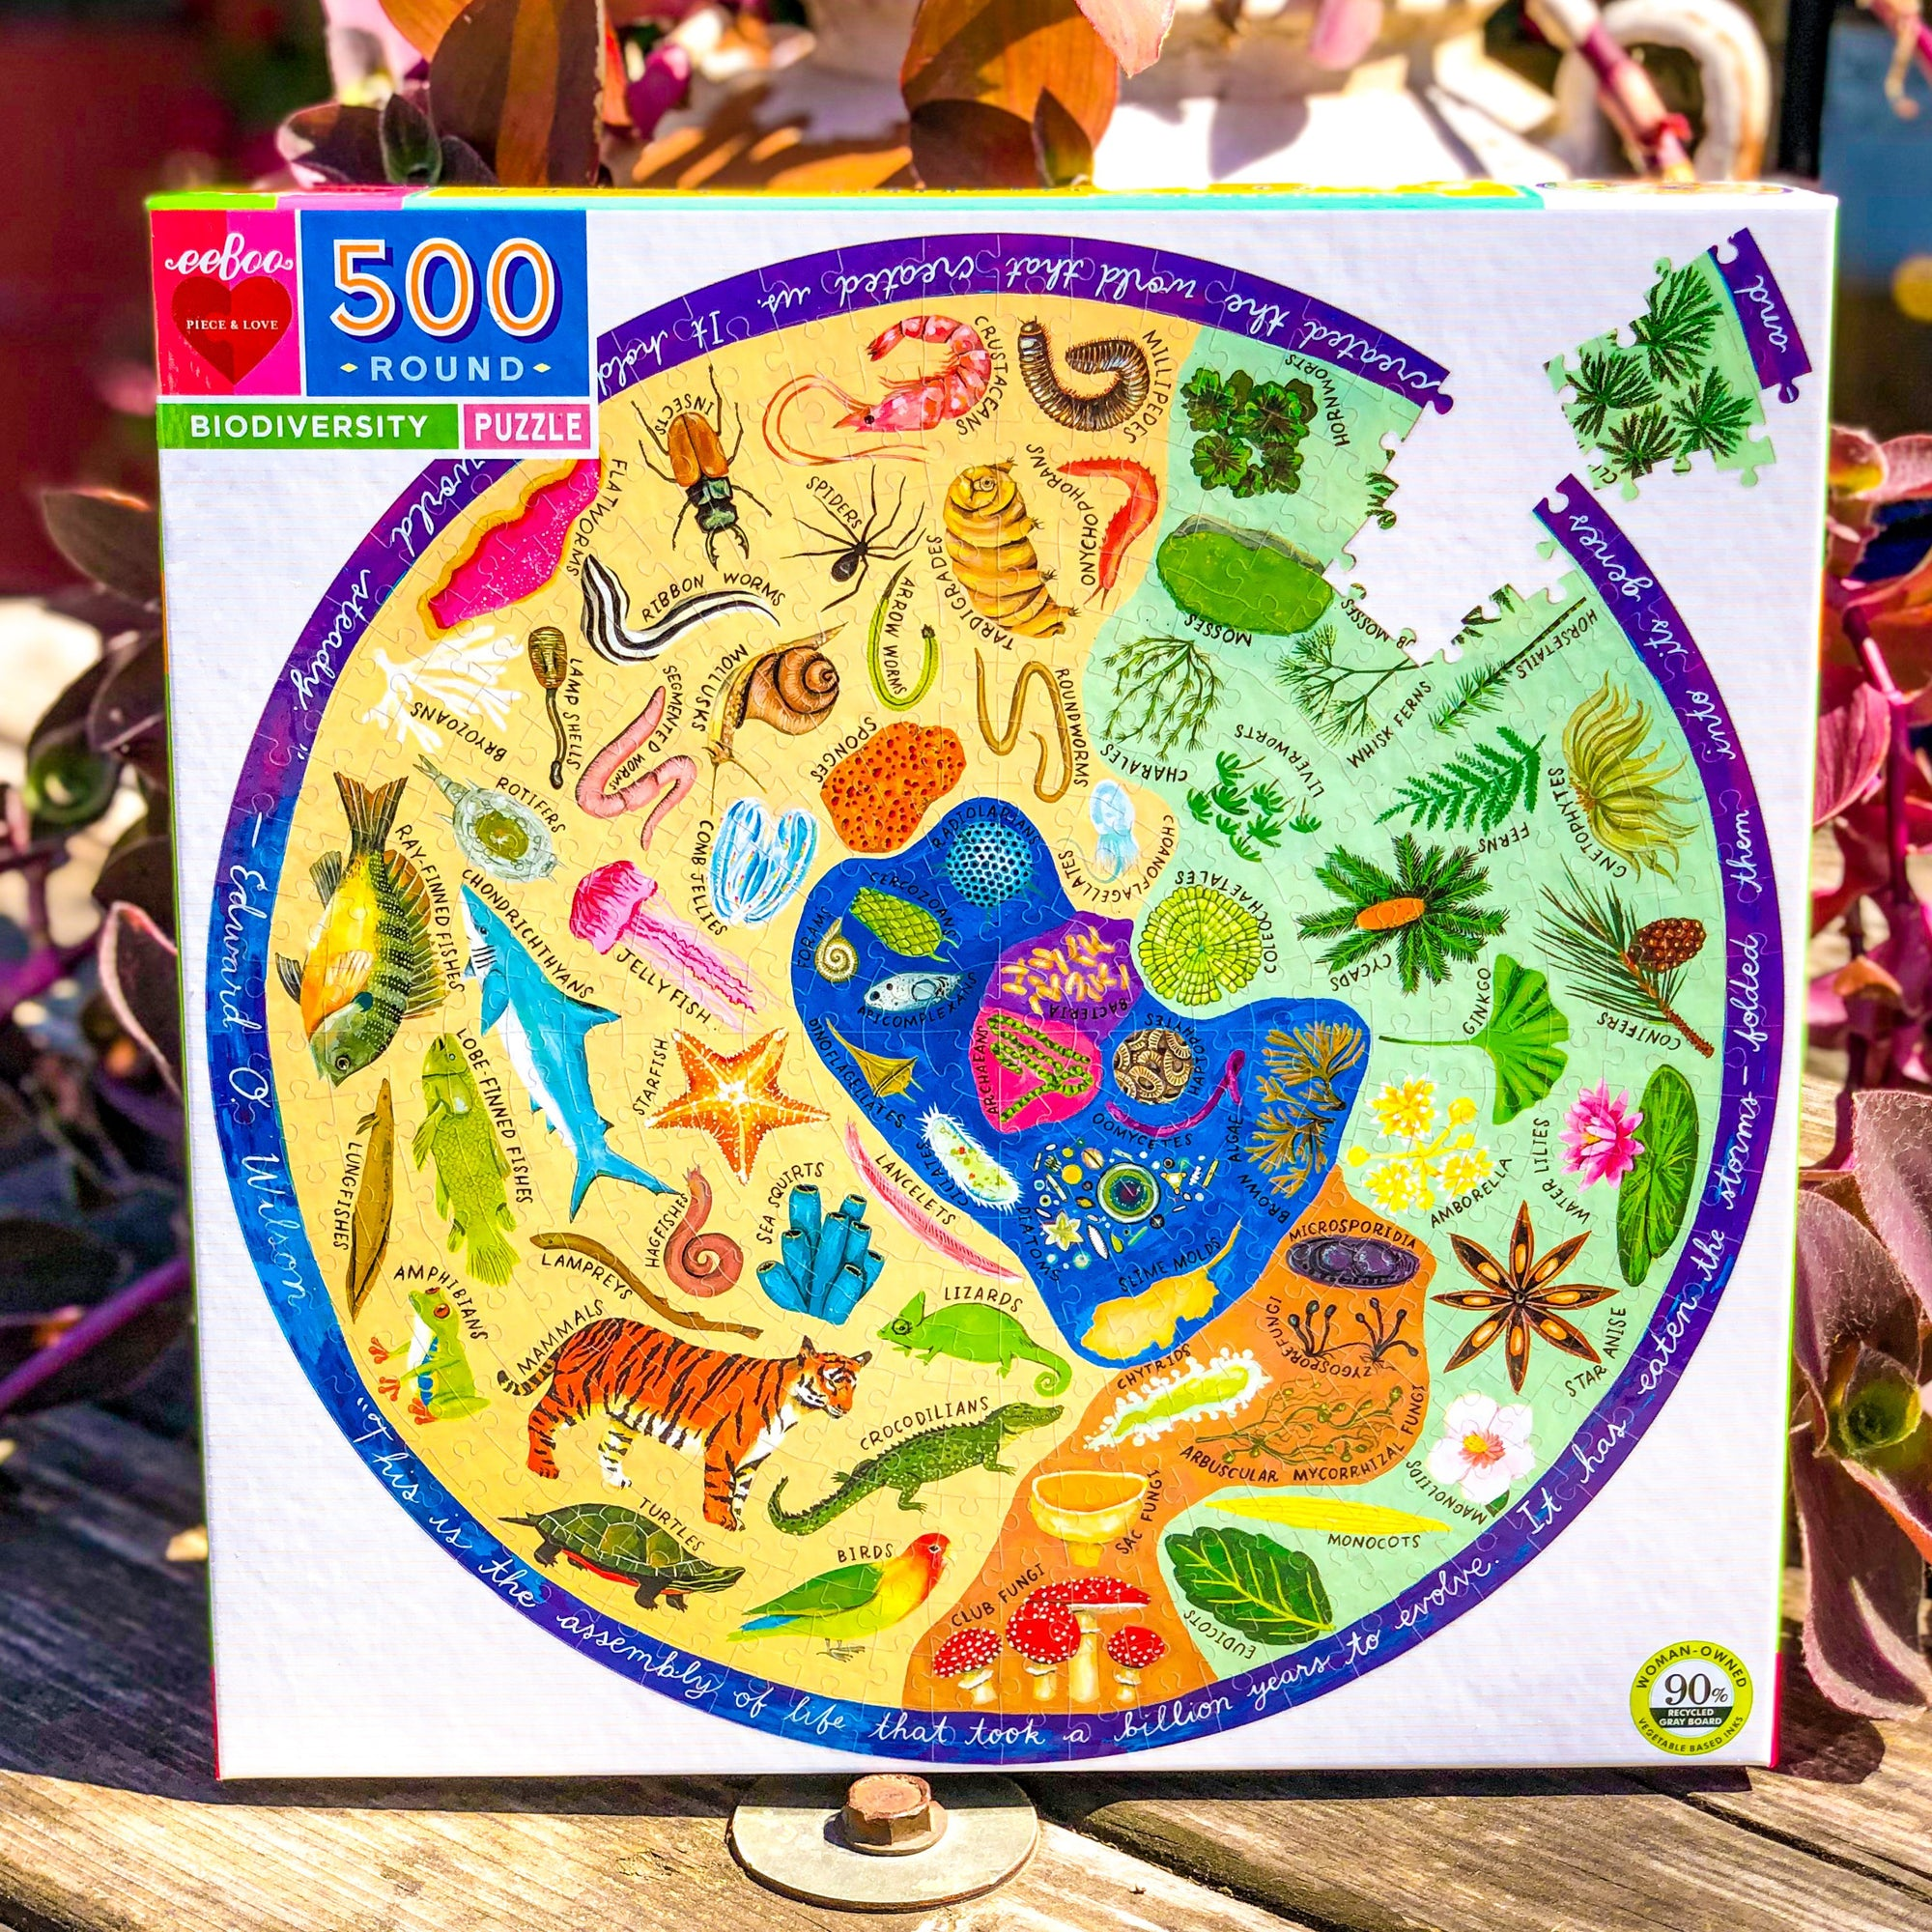 Biodiversity 500 Piece Round Jigsaw Puzzle - Walking Pants Curiosities